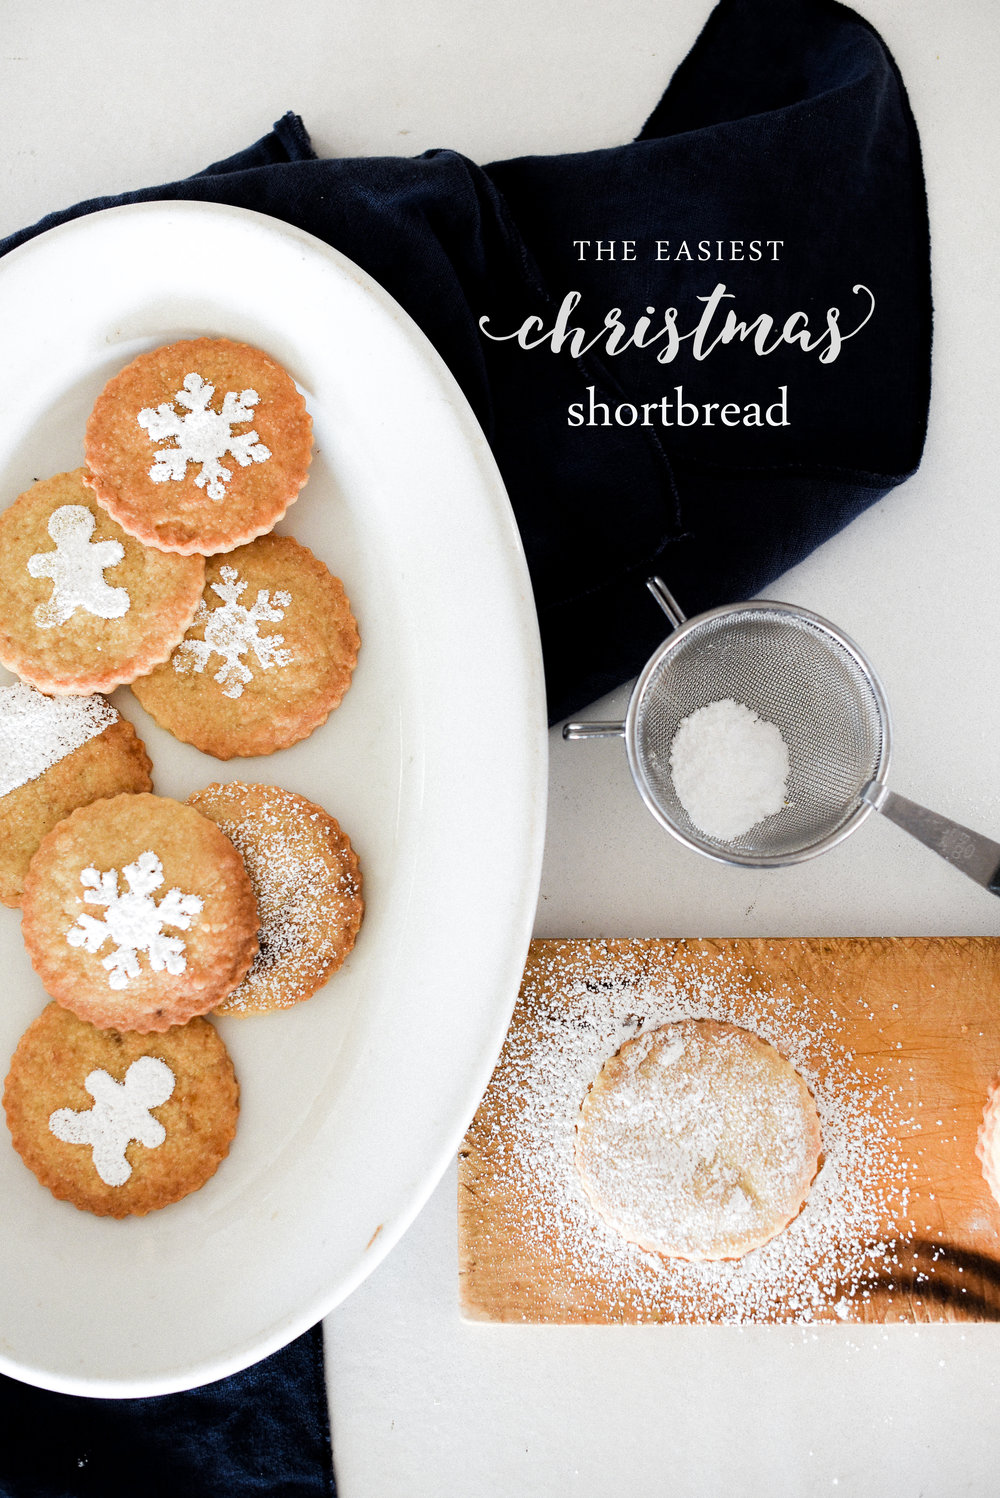 This Christmas shortbread is adaptable and easy! boxwoodavenue.com#christmascookies #holidaycookies